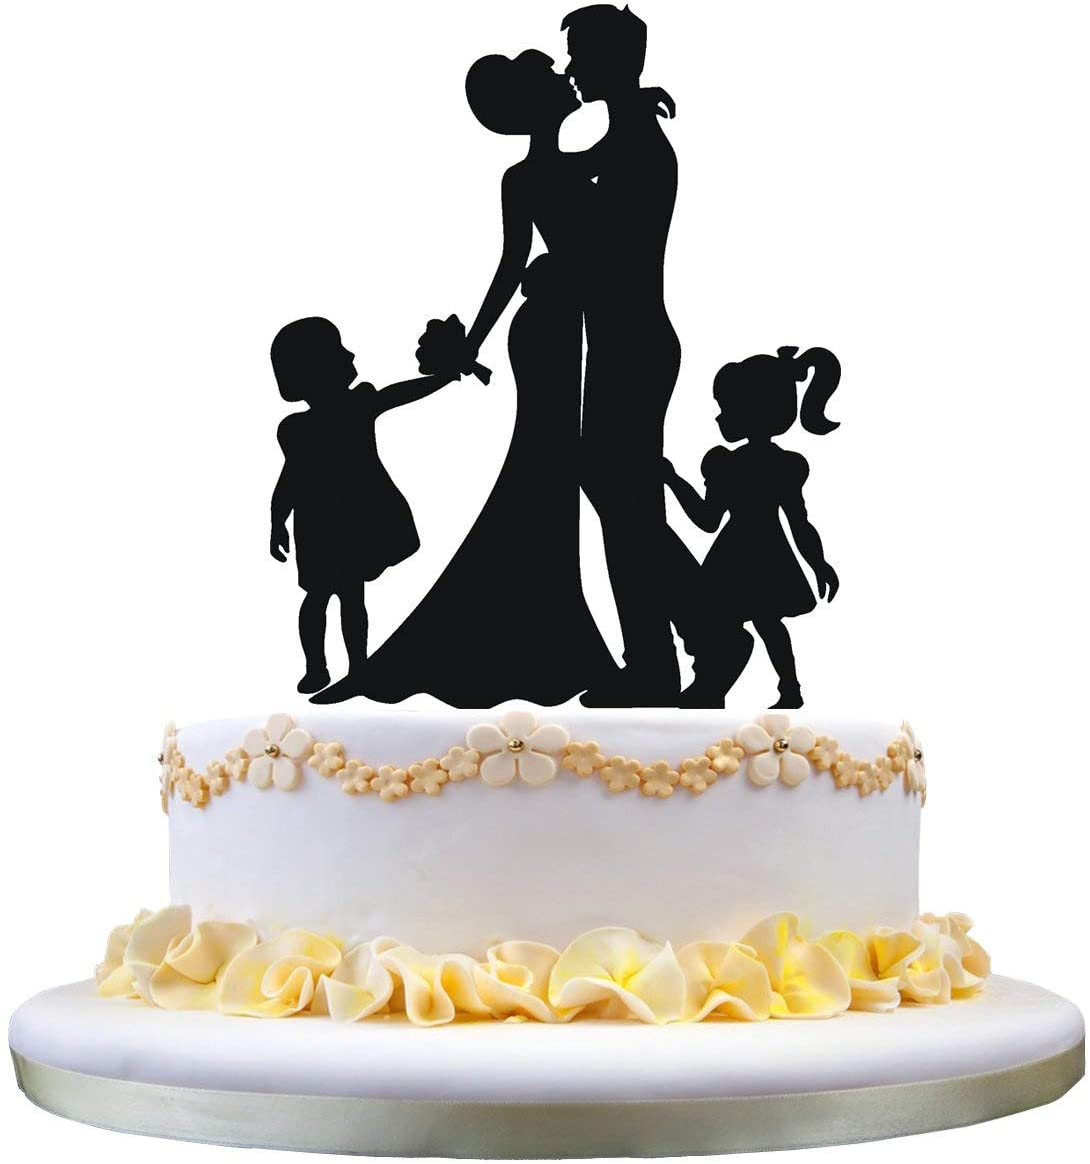 zhongfei Anniversary Cake Topper- Bride and Groom with 2 Little Girls, Happy Family Cake Topper for Engagement Wedding Anniversary Cake Decoration